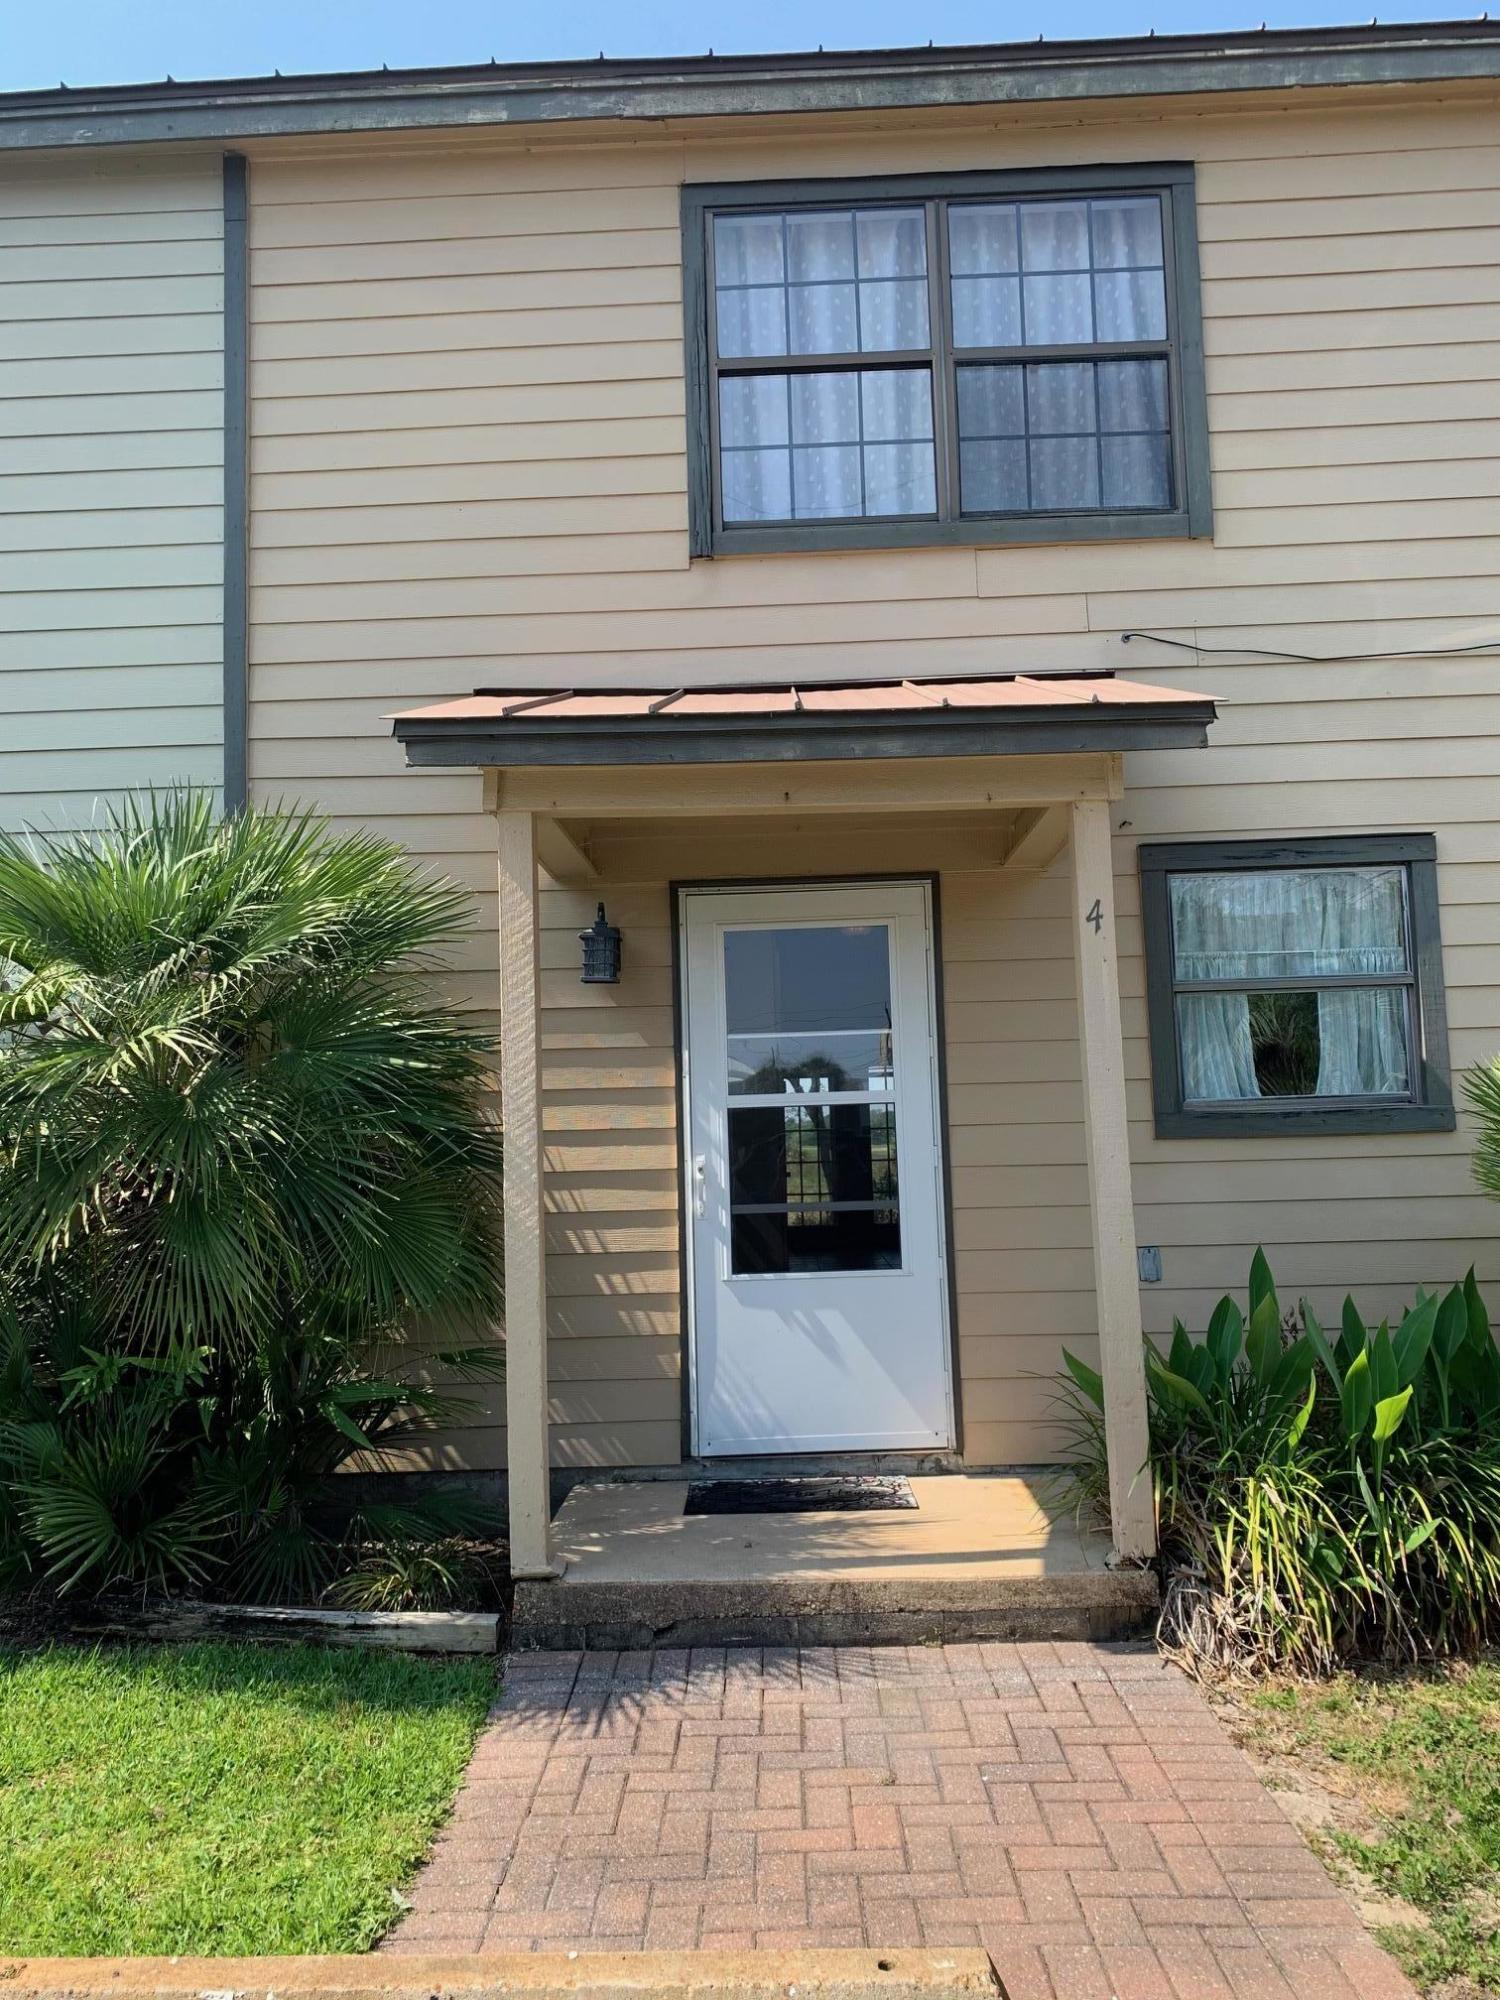 Summer Haven #4 is located in the heart of Miramar Beach backing up to Seascape Golf Course and enjoys close proximity to the beach, shopping, and local restaurants. This unit offers tile flooring throughout the main living area down stairs equipped with a half bath. Upstairs you have carpet and two large bedrooms. The Master Bedroom offers a walk-in closet and french doors opening to the balcony overlooking the golf course. The upstairs bathroom is a Jack and Jill type, where both areas have their own half bath. This unit is spacious and ready for you to make it your new home! Make Summer Haven #4 your Miramar Beach address today!